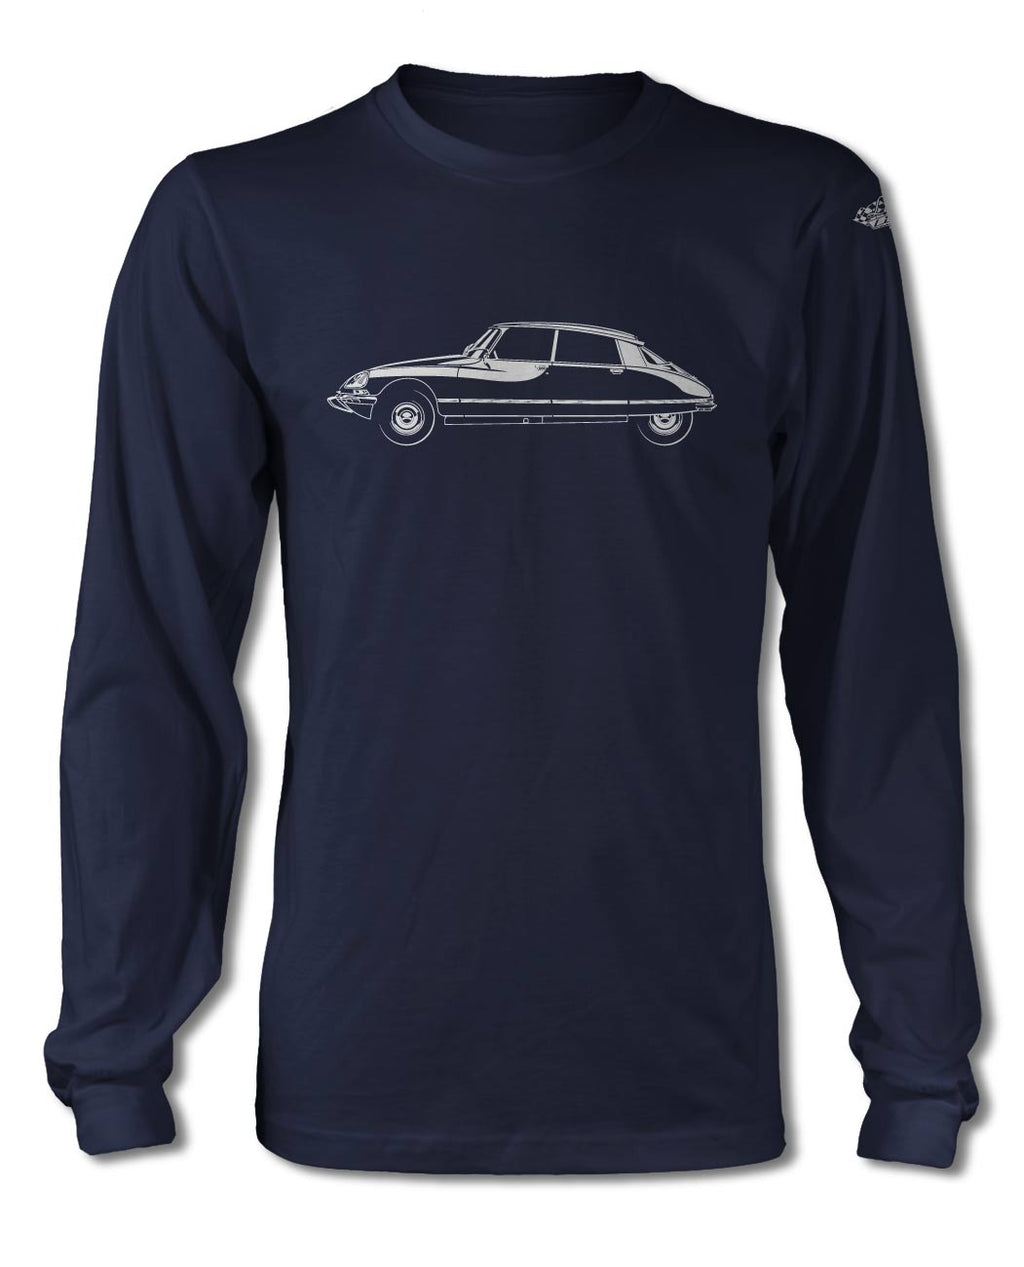 Citroen DS ID 1968 - 1976 Sedan 4 doors T-Shirt - Long Sleeves - Side View